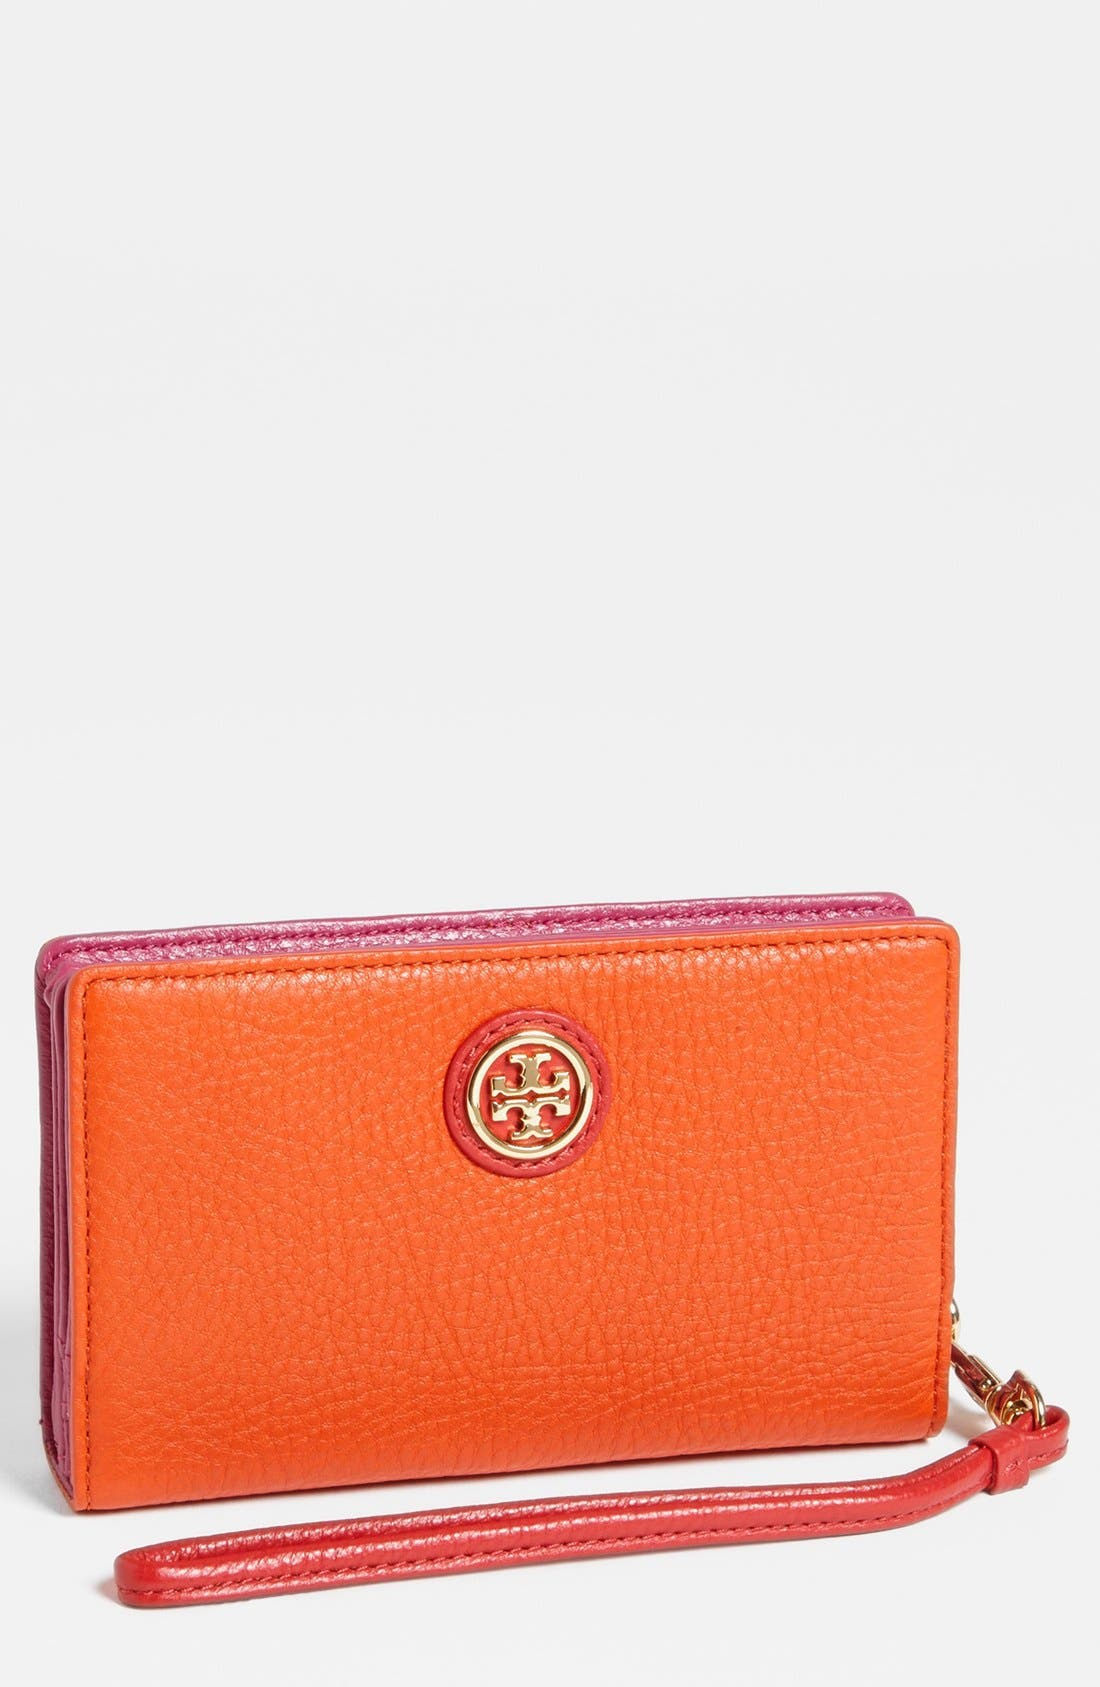 Alternate Image 1 Selected - Tory Burch 'Clay' Smartphone Wristlet